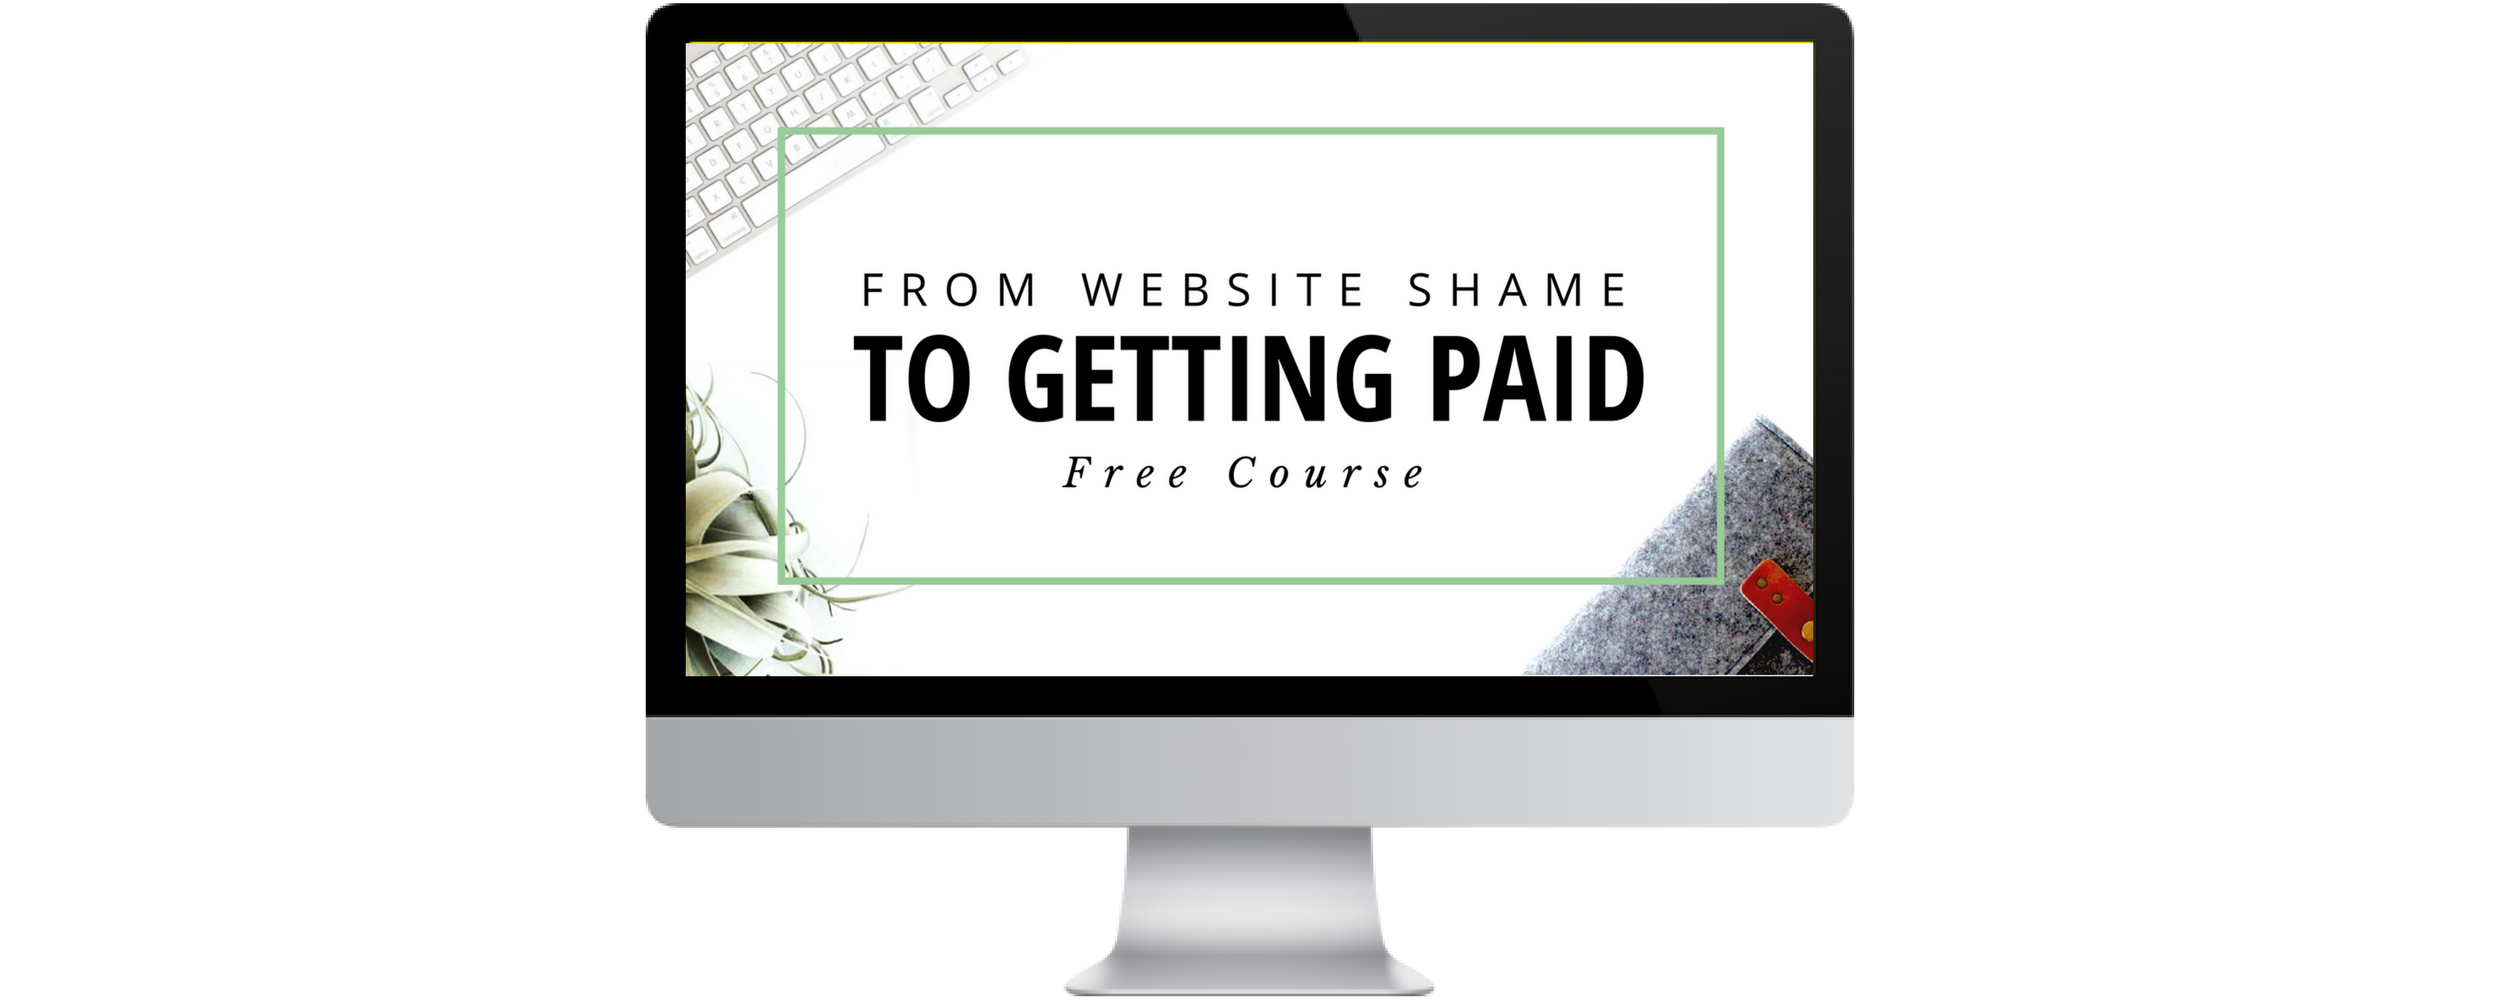 From Website Shame to Getting Paid Course